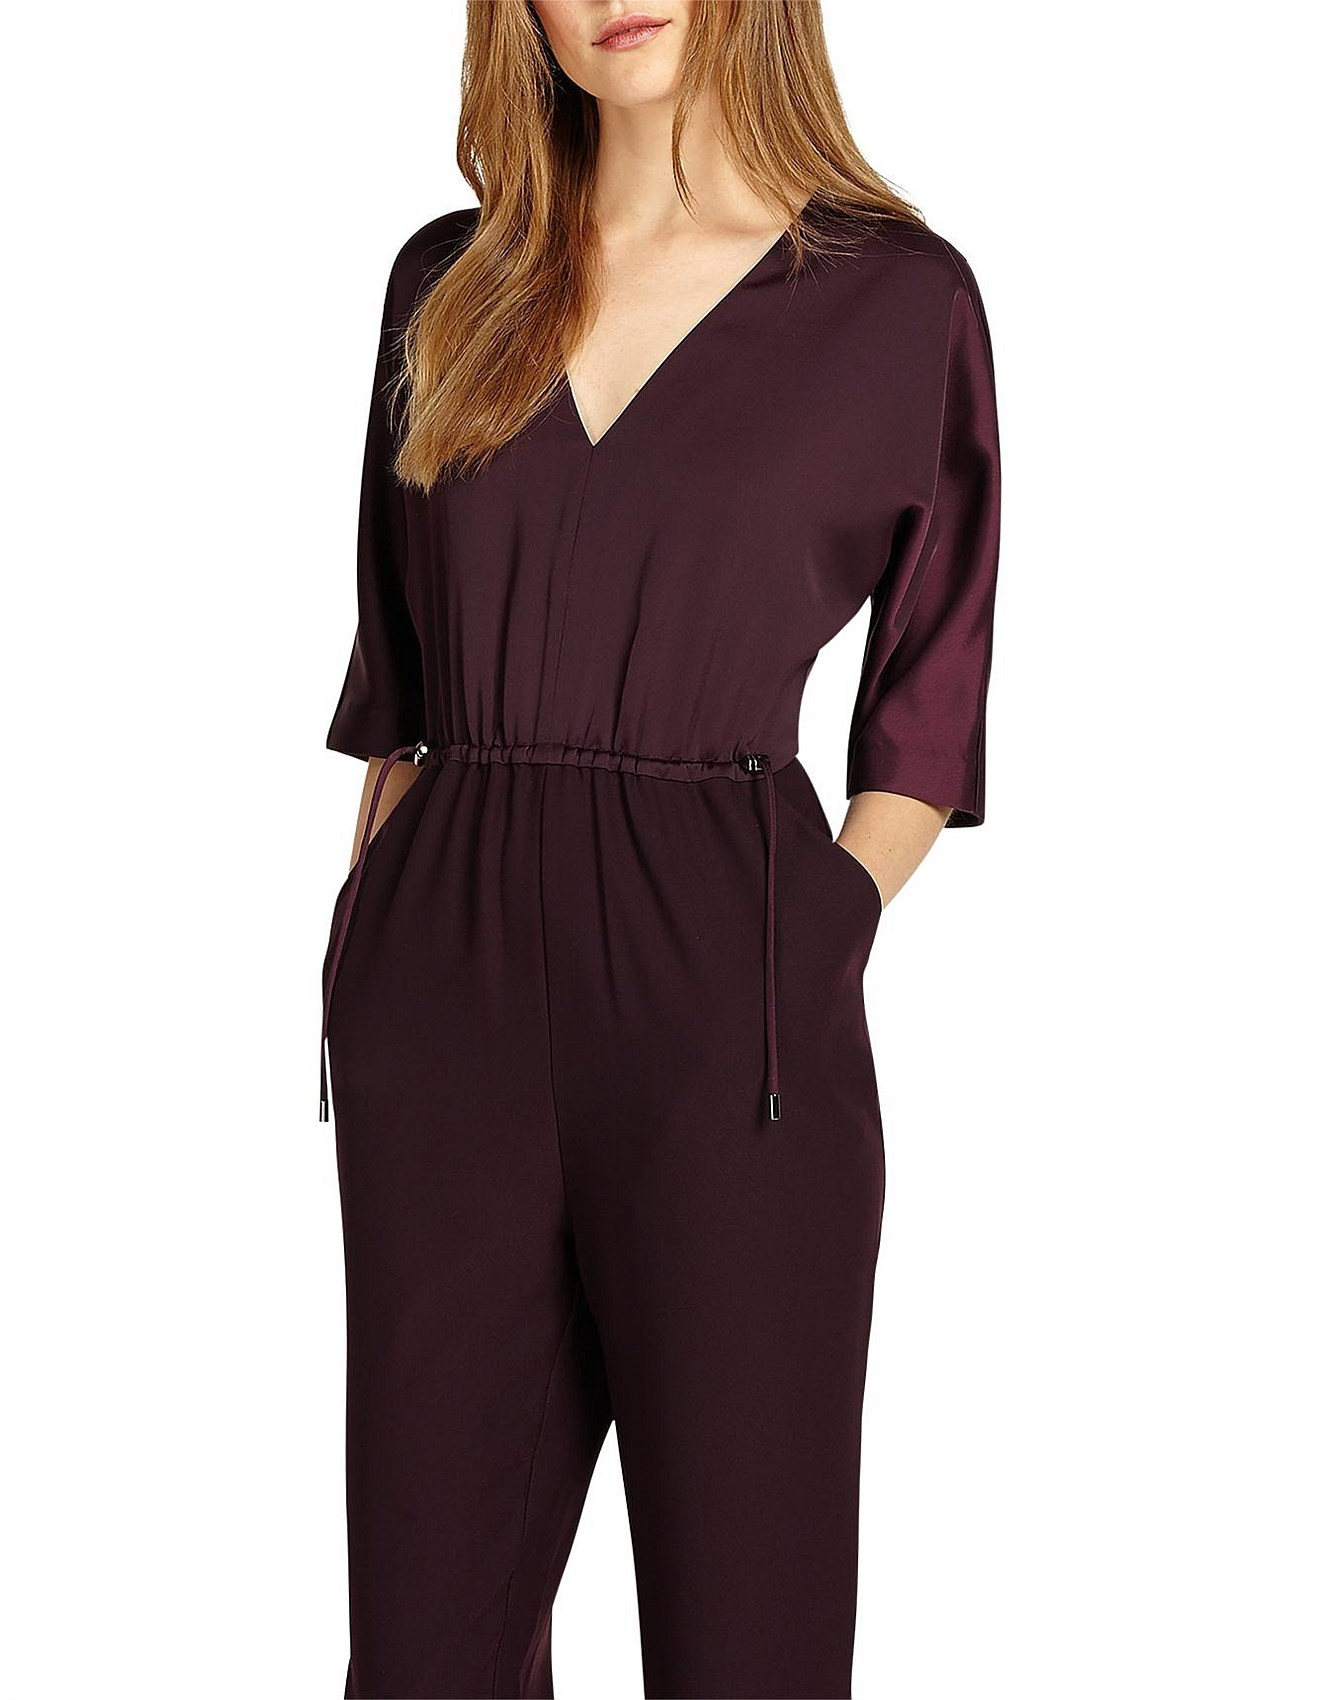 cdade48f63f Amara Jumpsuit Special Offer DJ On Sale. 1